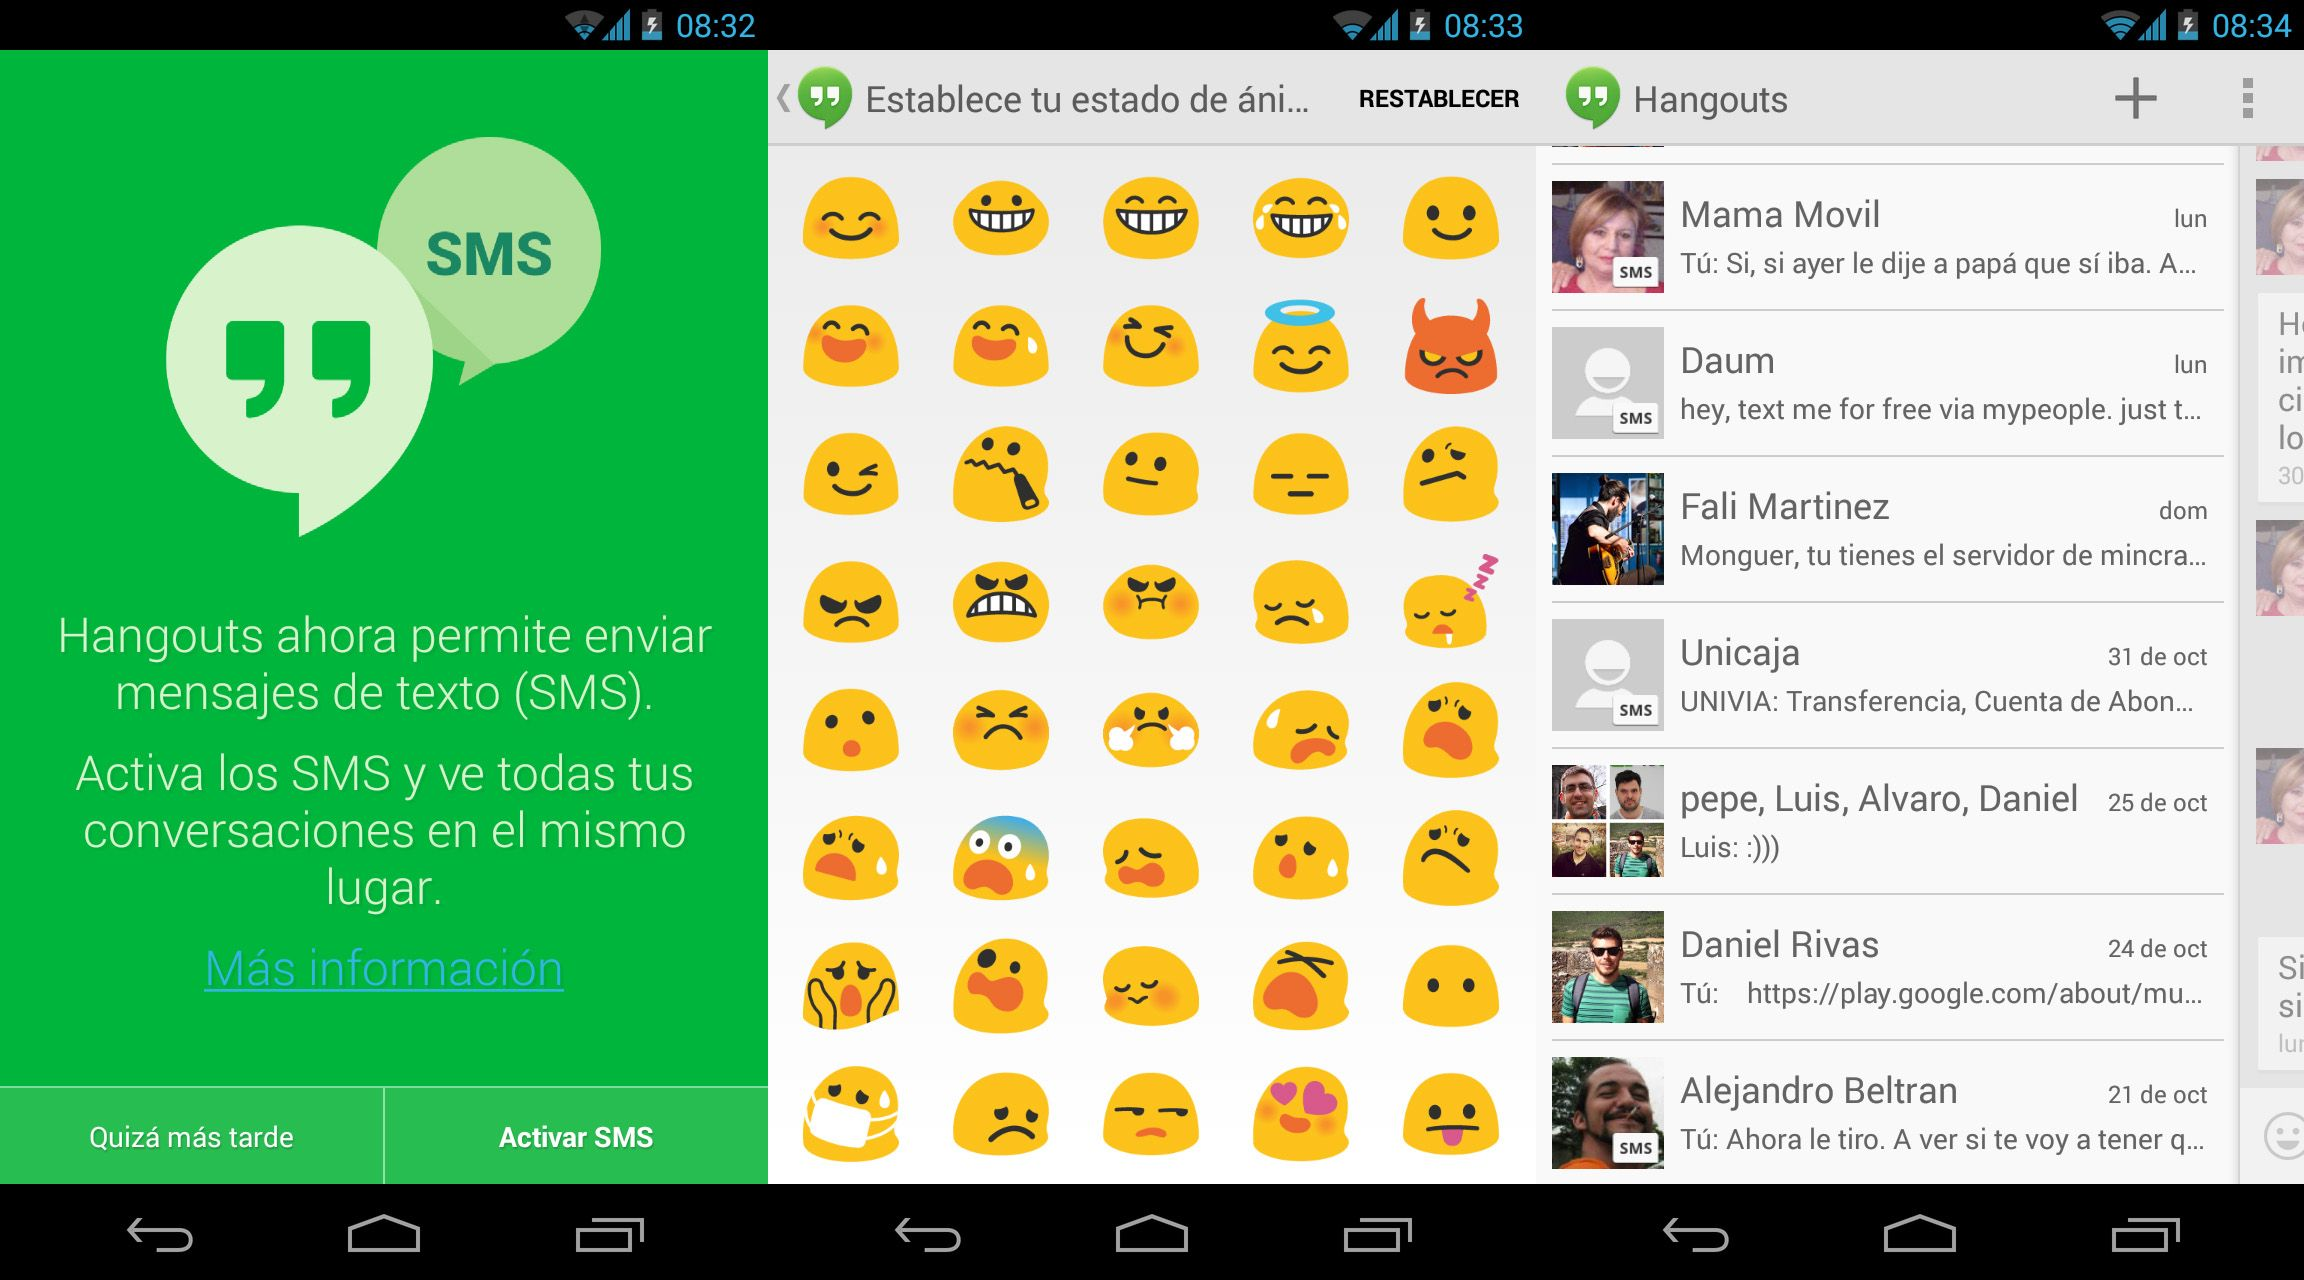 Hangouts-2-screenshots-sms